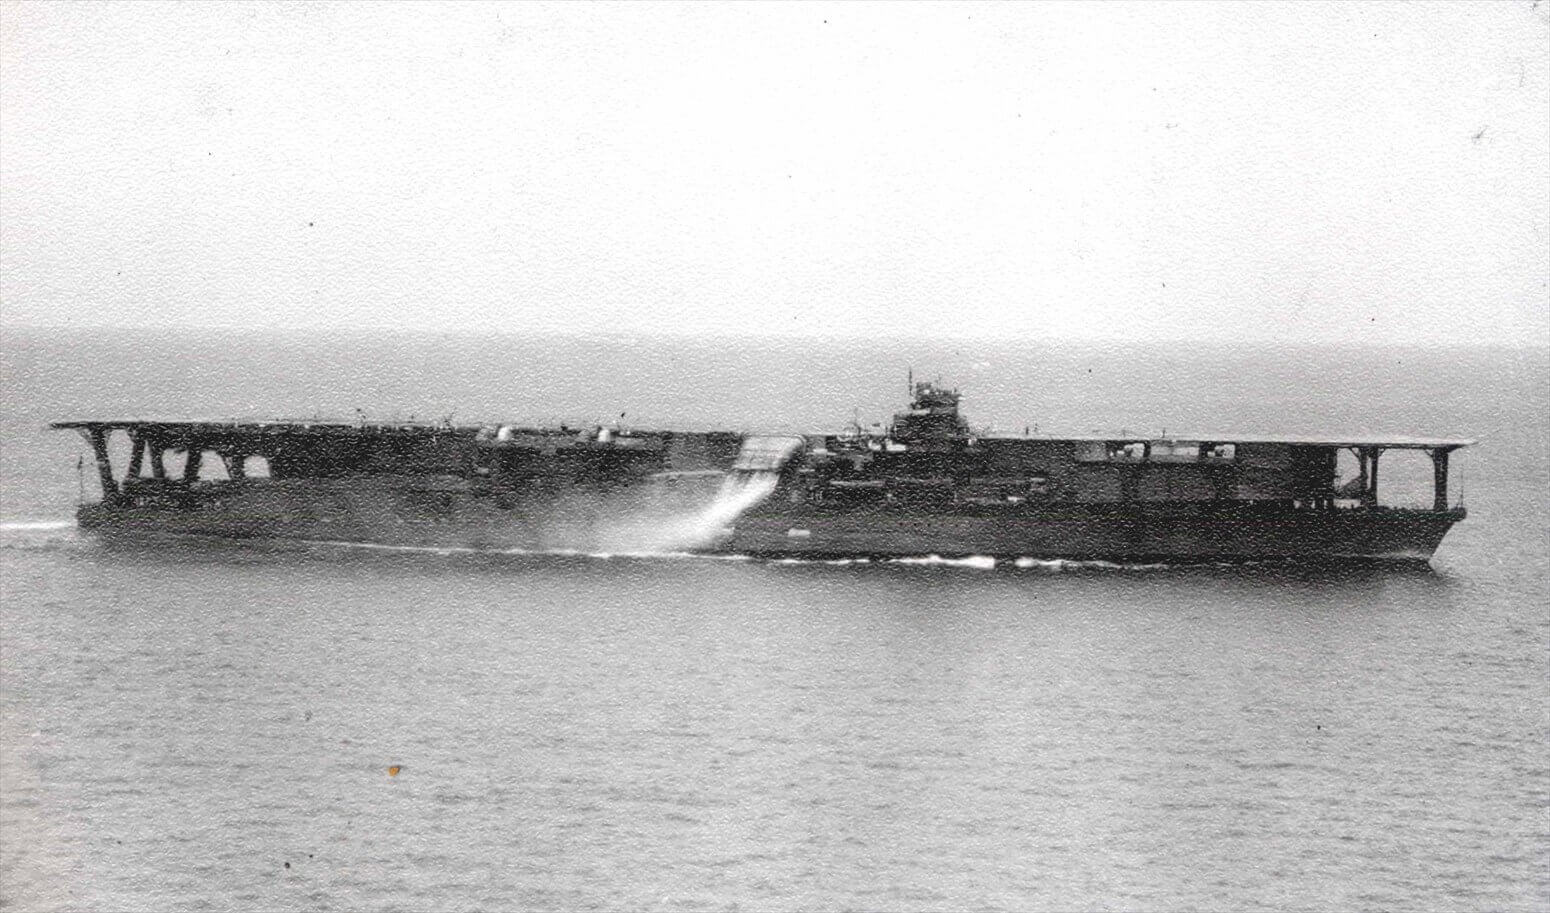 加賀【航空母艦】<br><font size=5%>KAGA【Aircraft carrier】</font>